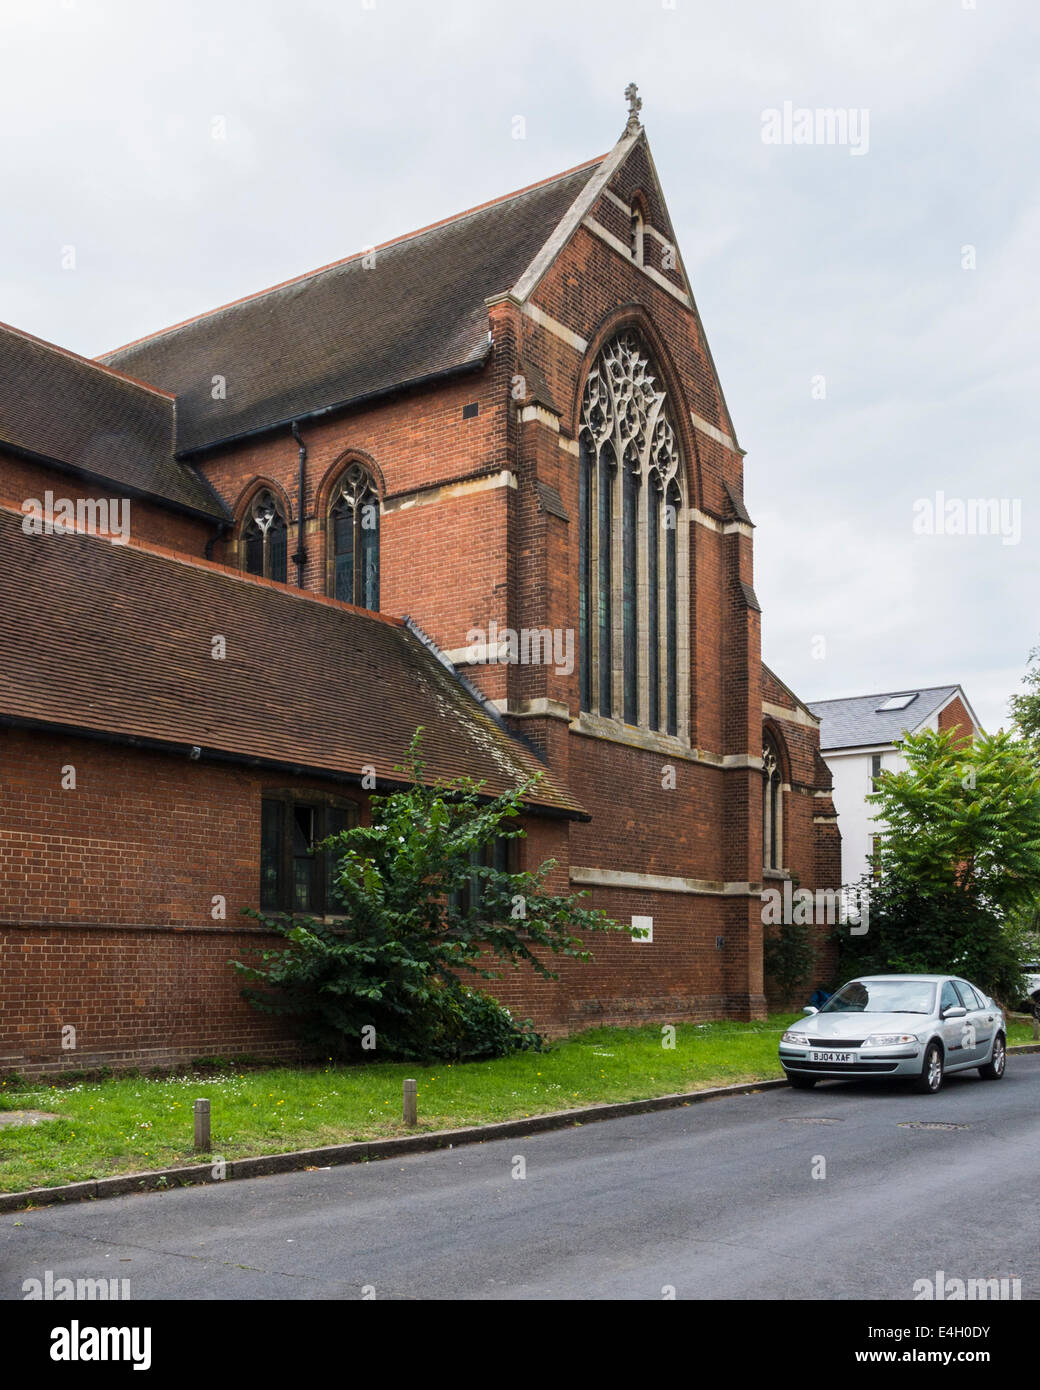 All Saints Church of England in Twickenham, Greater London, UK - Stock Image